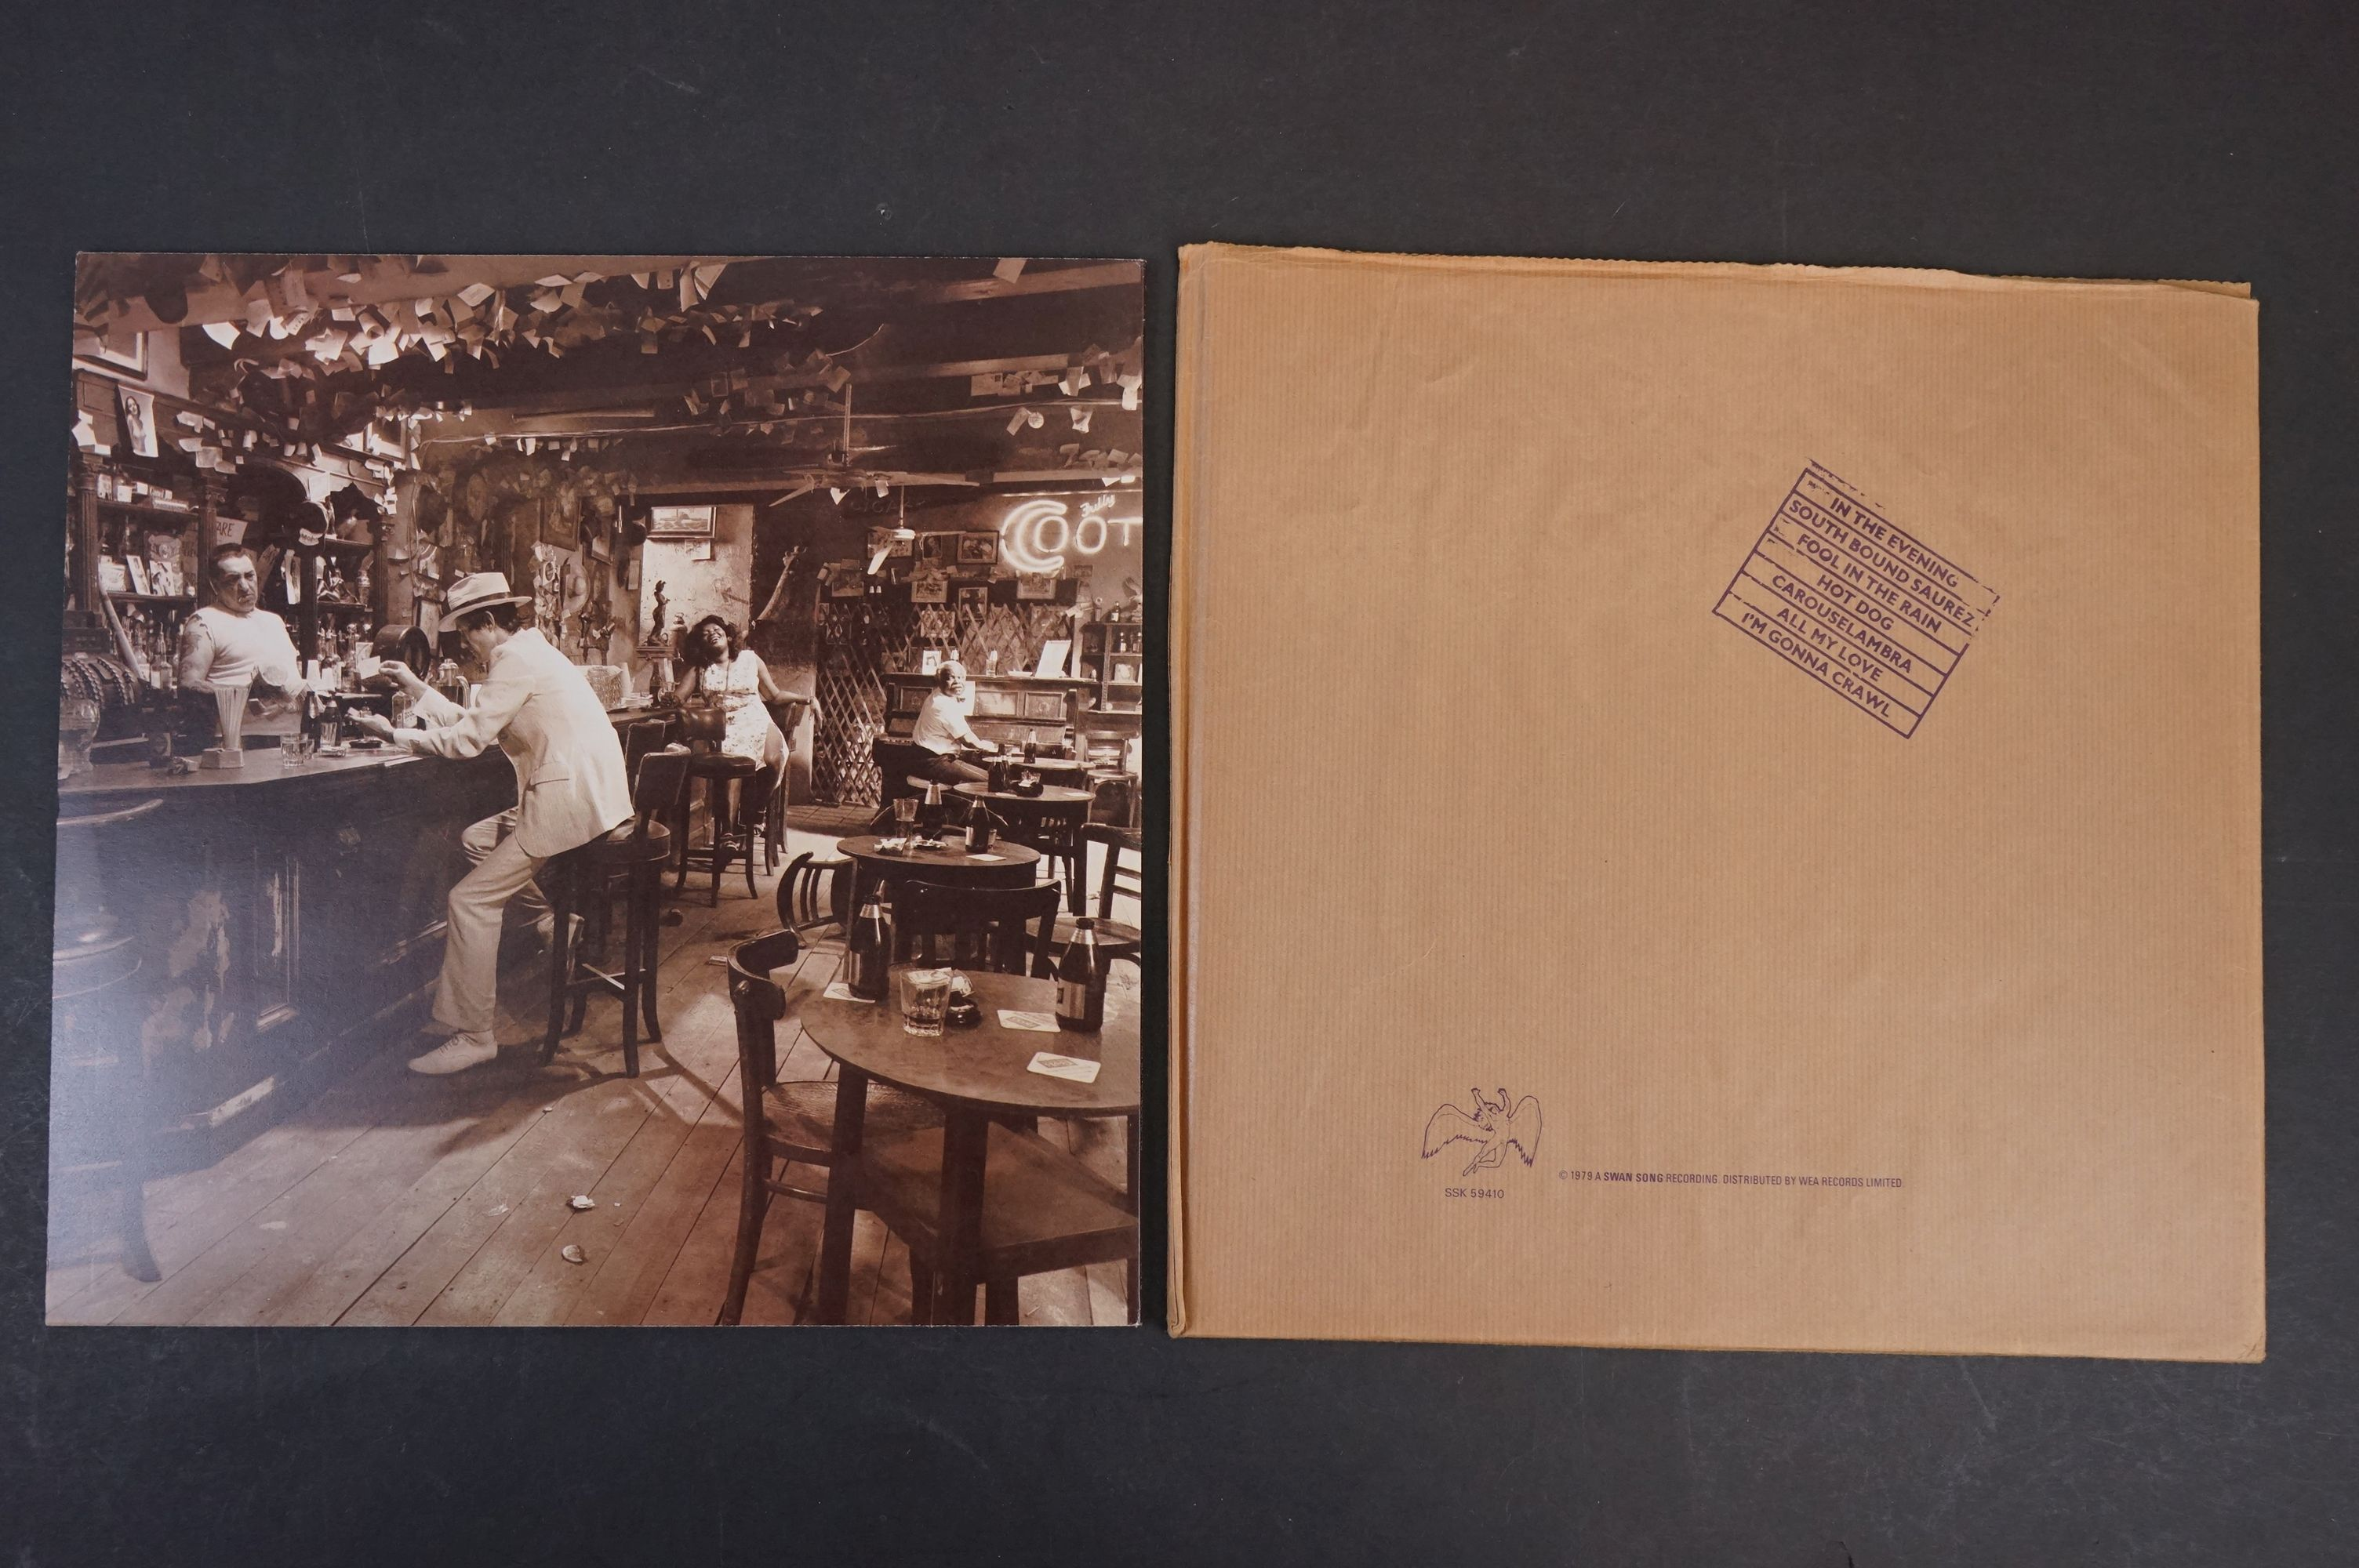 Vinyl - Six Led Zeppelin LPs to include In Through the Outdoor (cover D) SSK59410, Coda 790051, 2 - Image 17 of 17